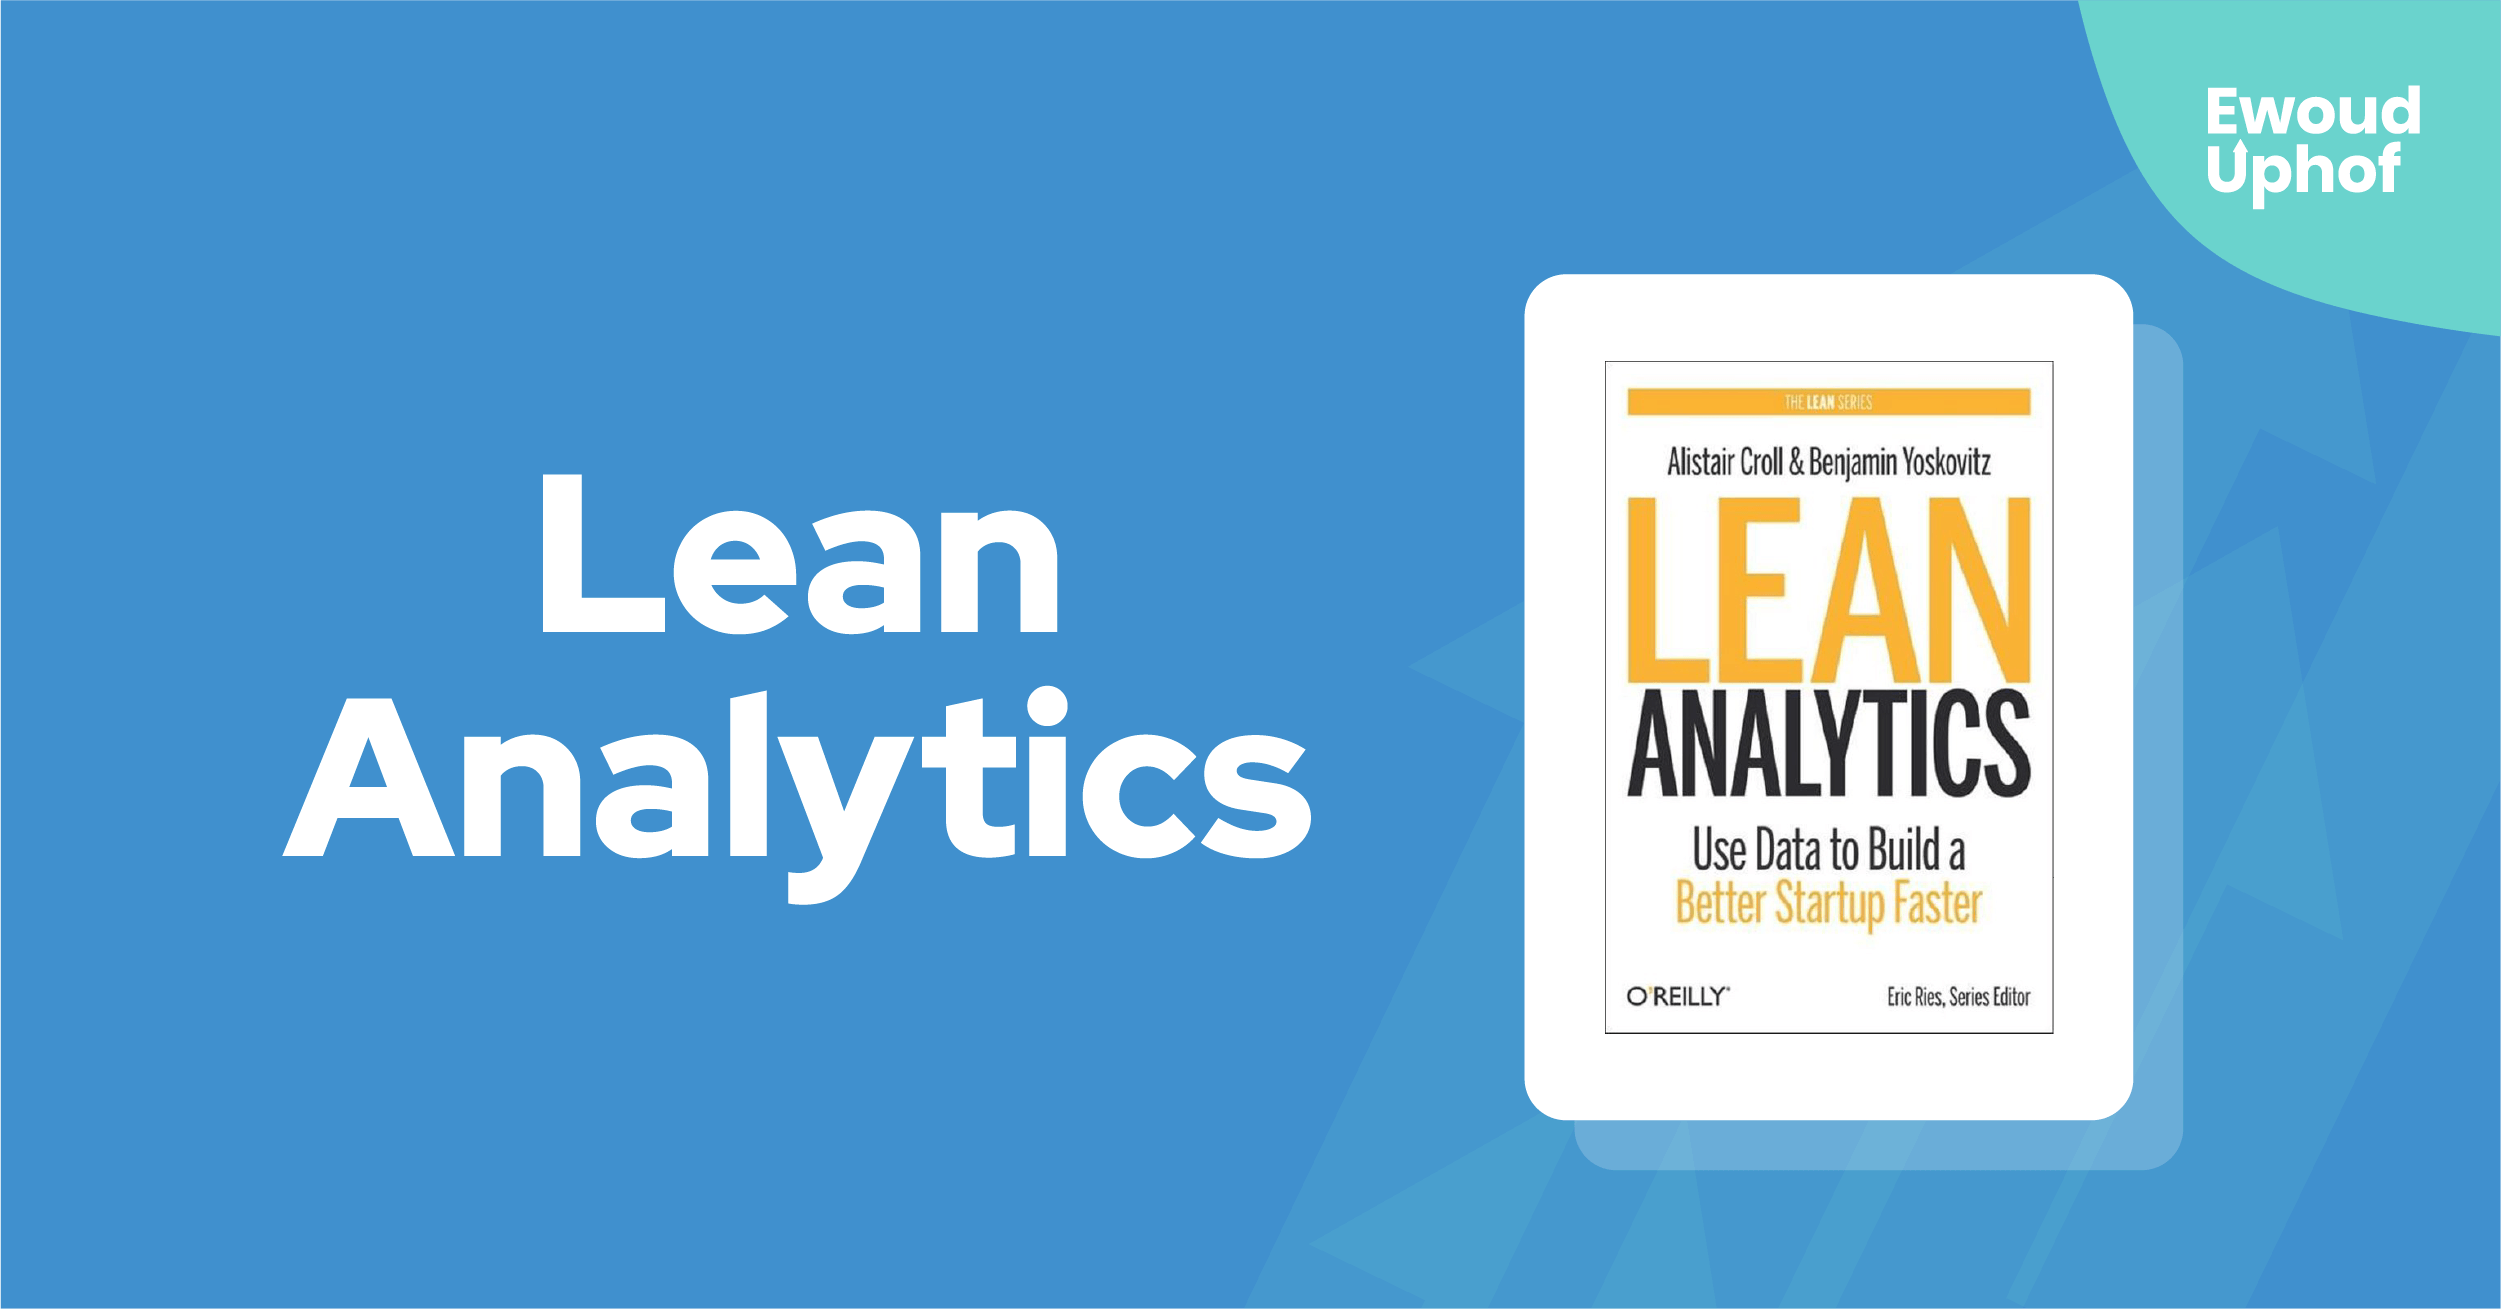 Lean Analytics samenvatting